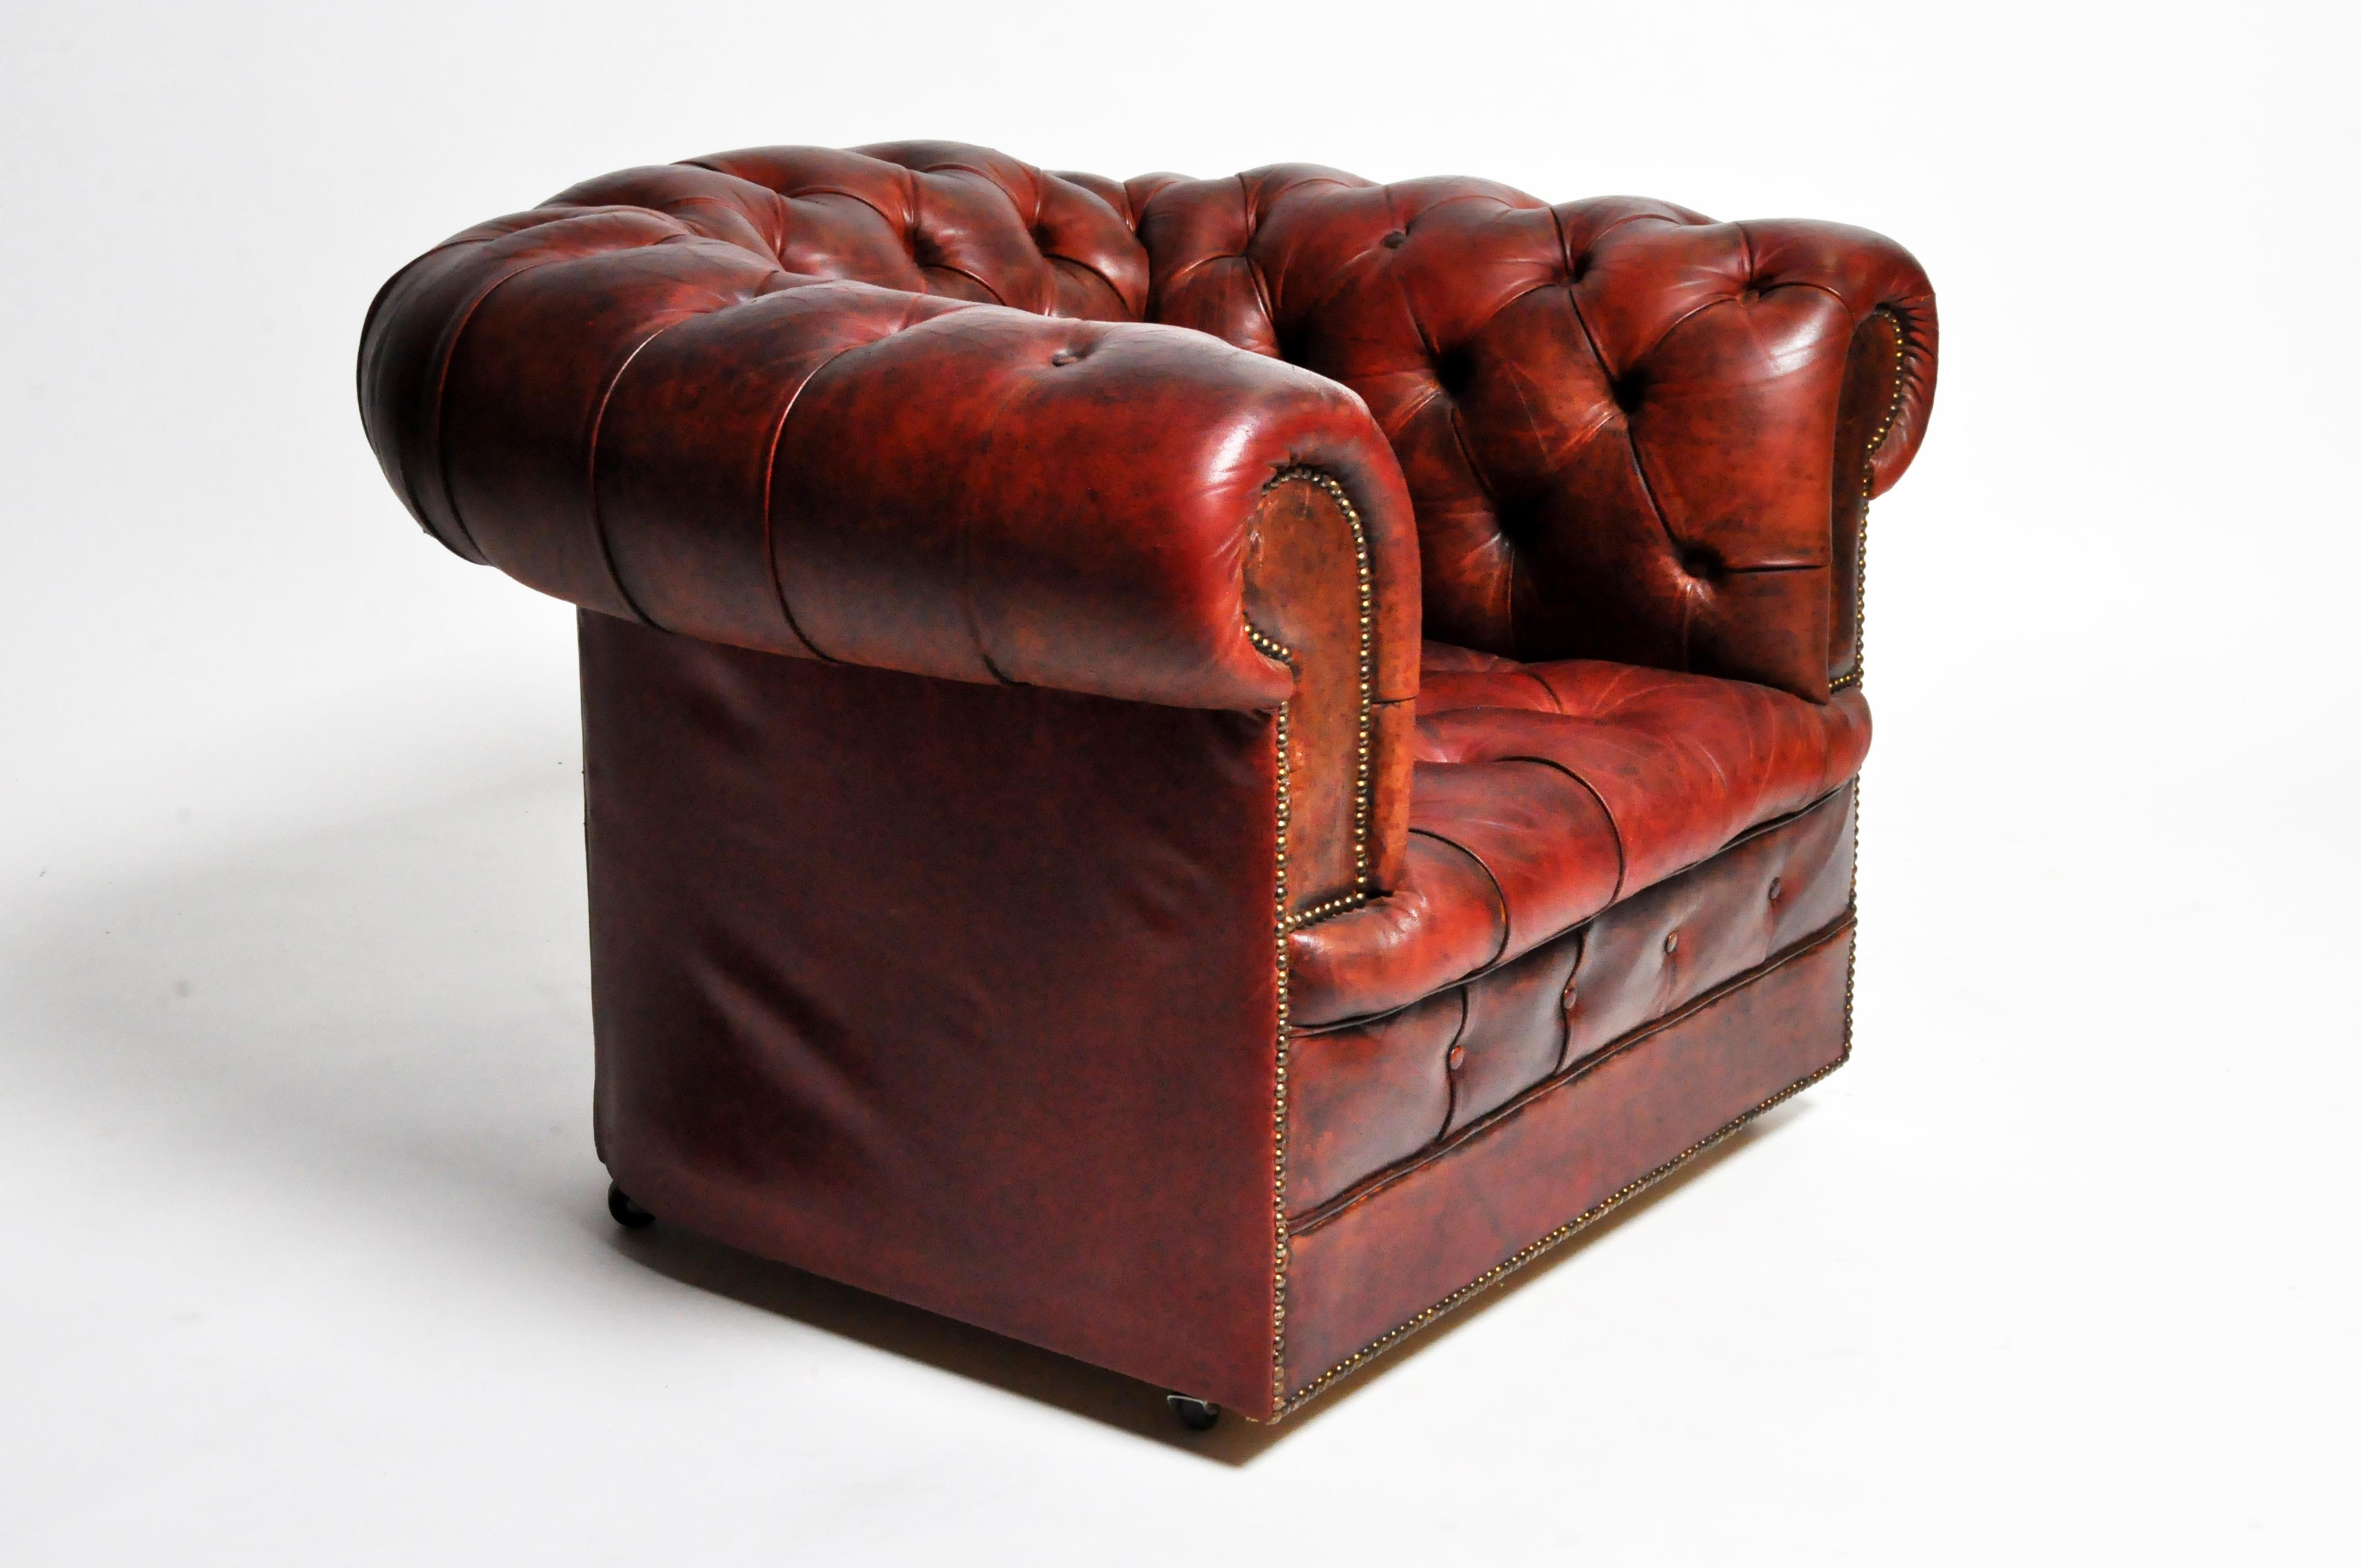 High-End 1940s Art Deco Leather Chesterfield Chair on Casters | DECASO